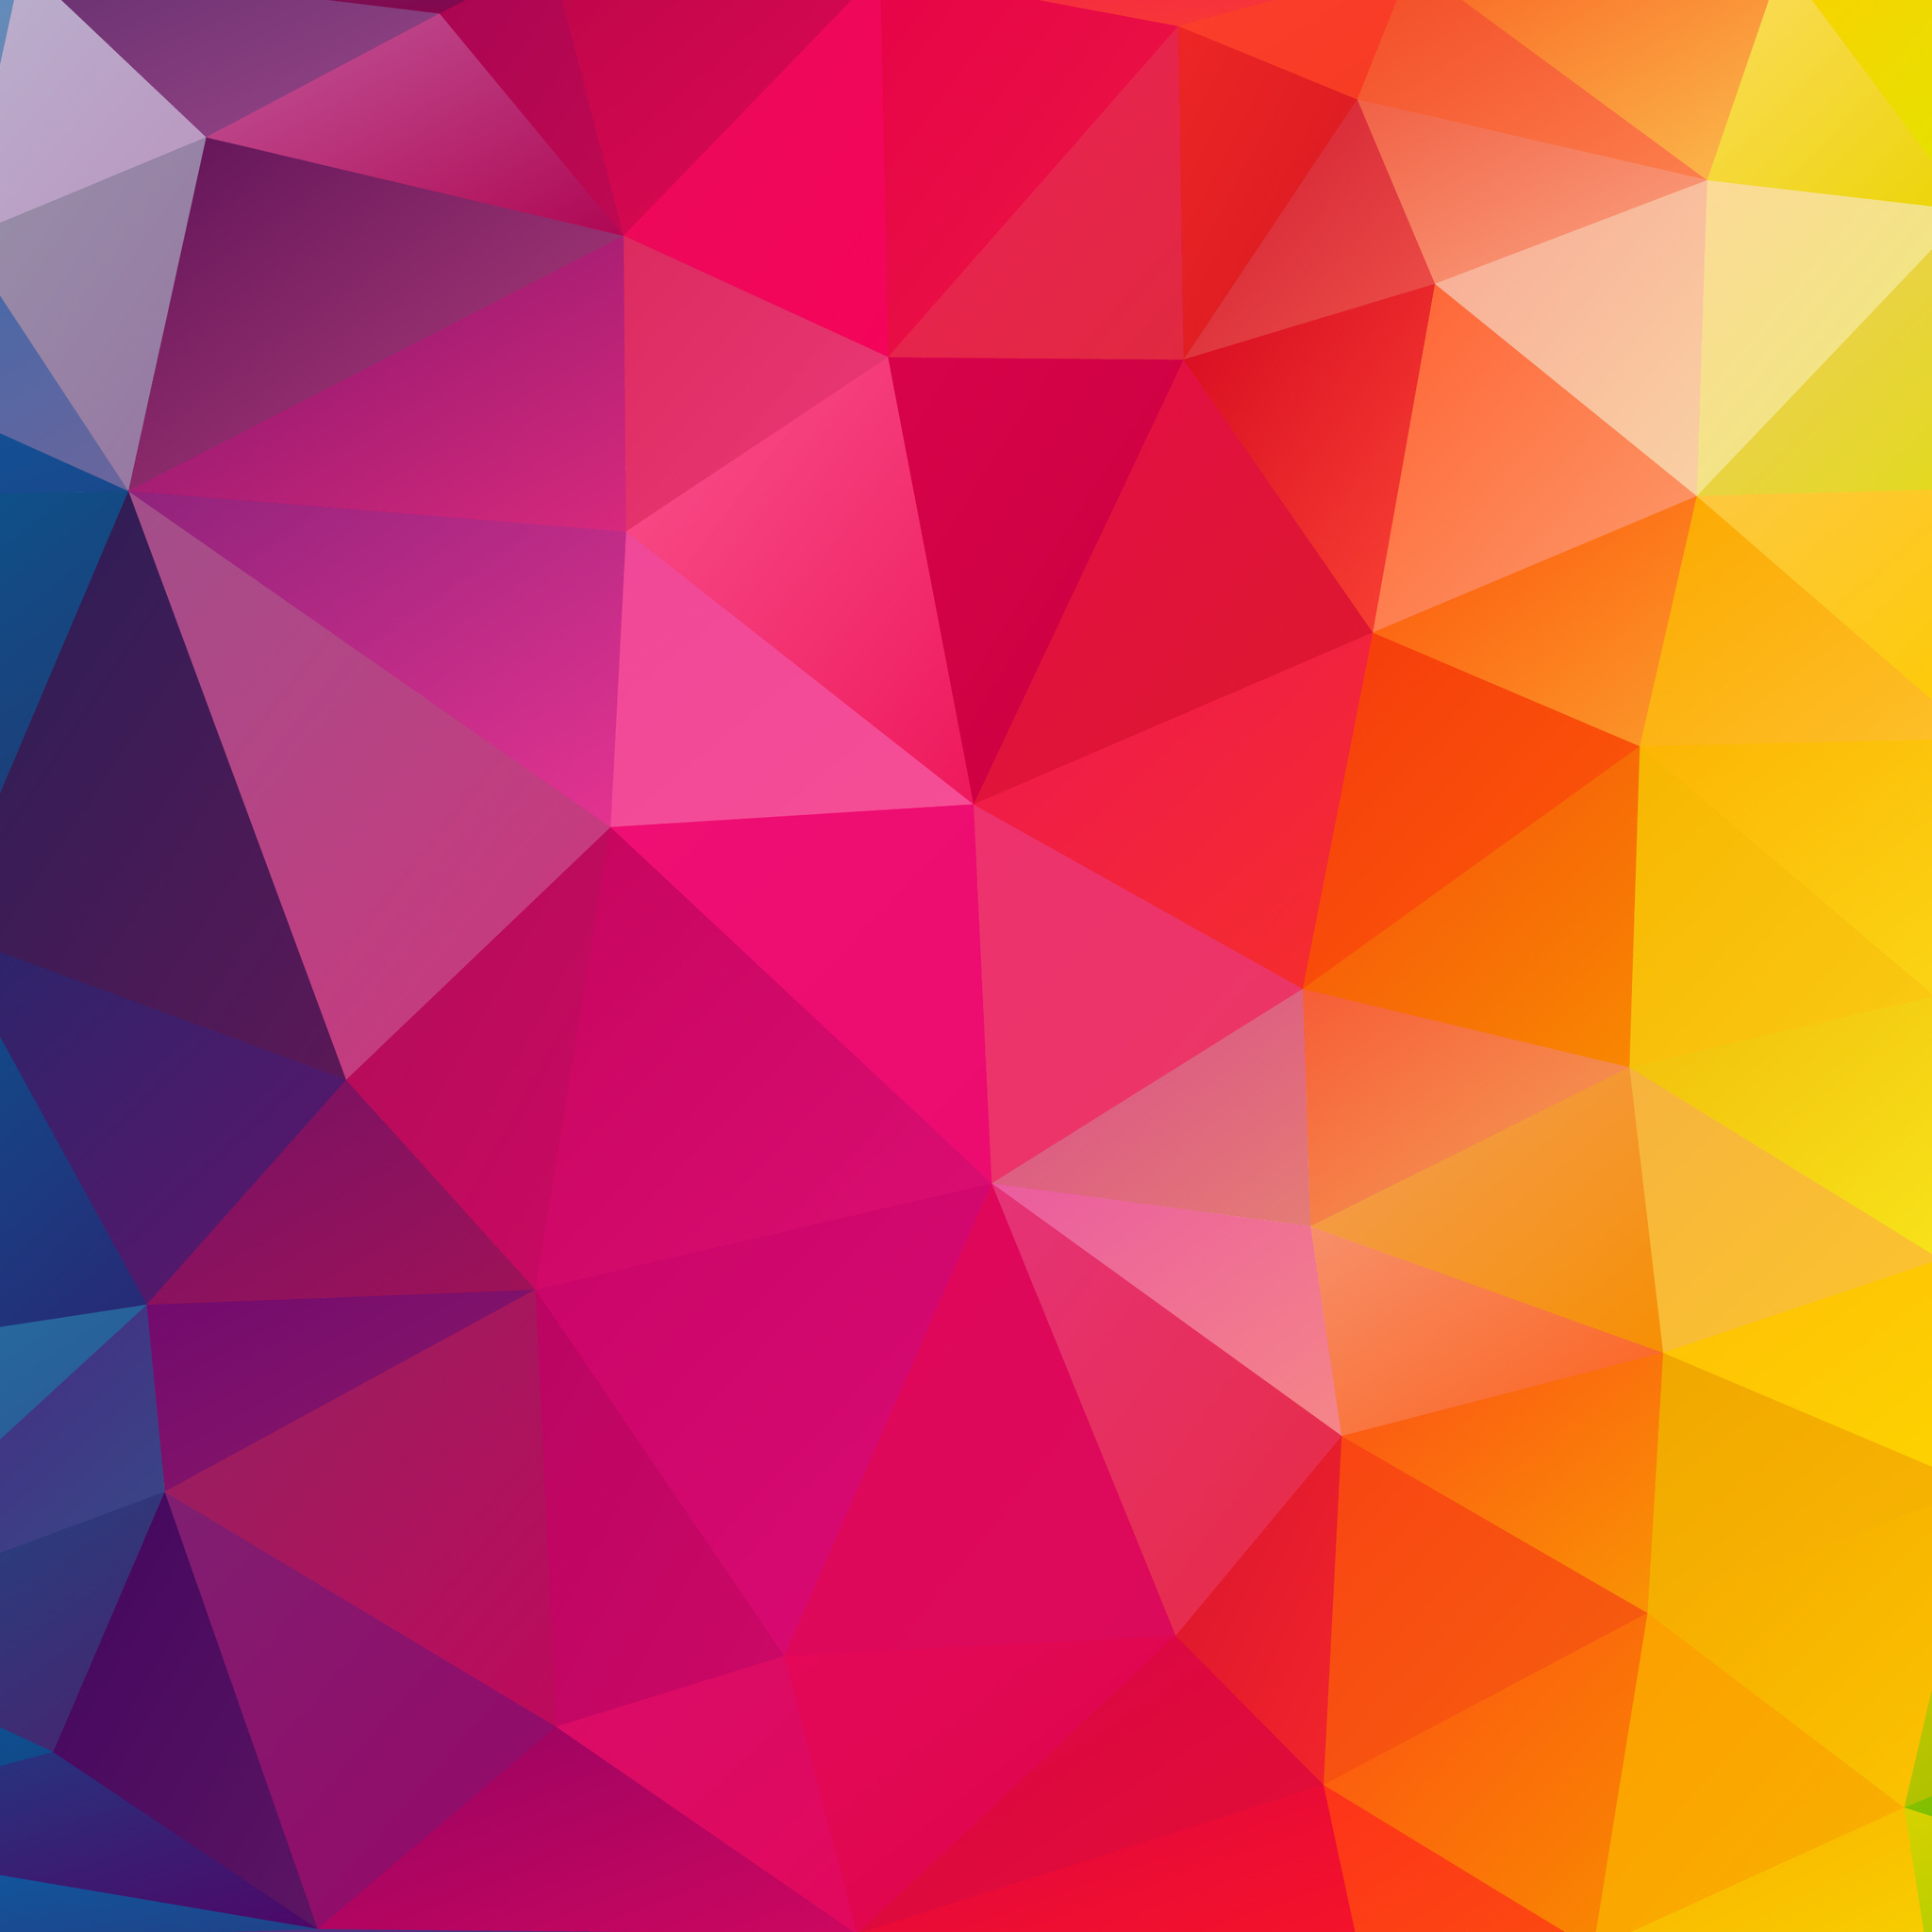 3d Geometric Wallpaper For Walls 2048x2048 Triangles Colorful Background Ipad Air Hd 4k